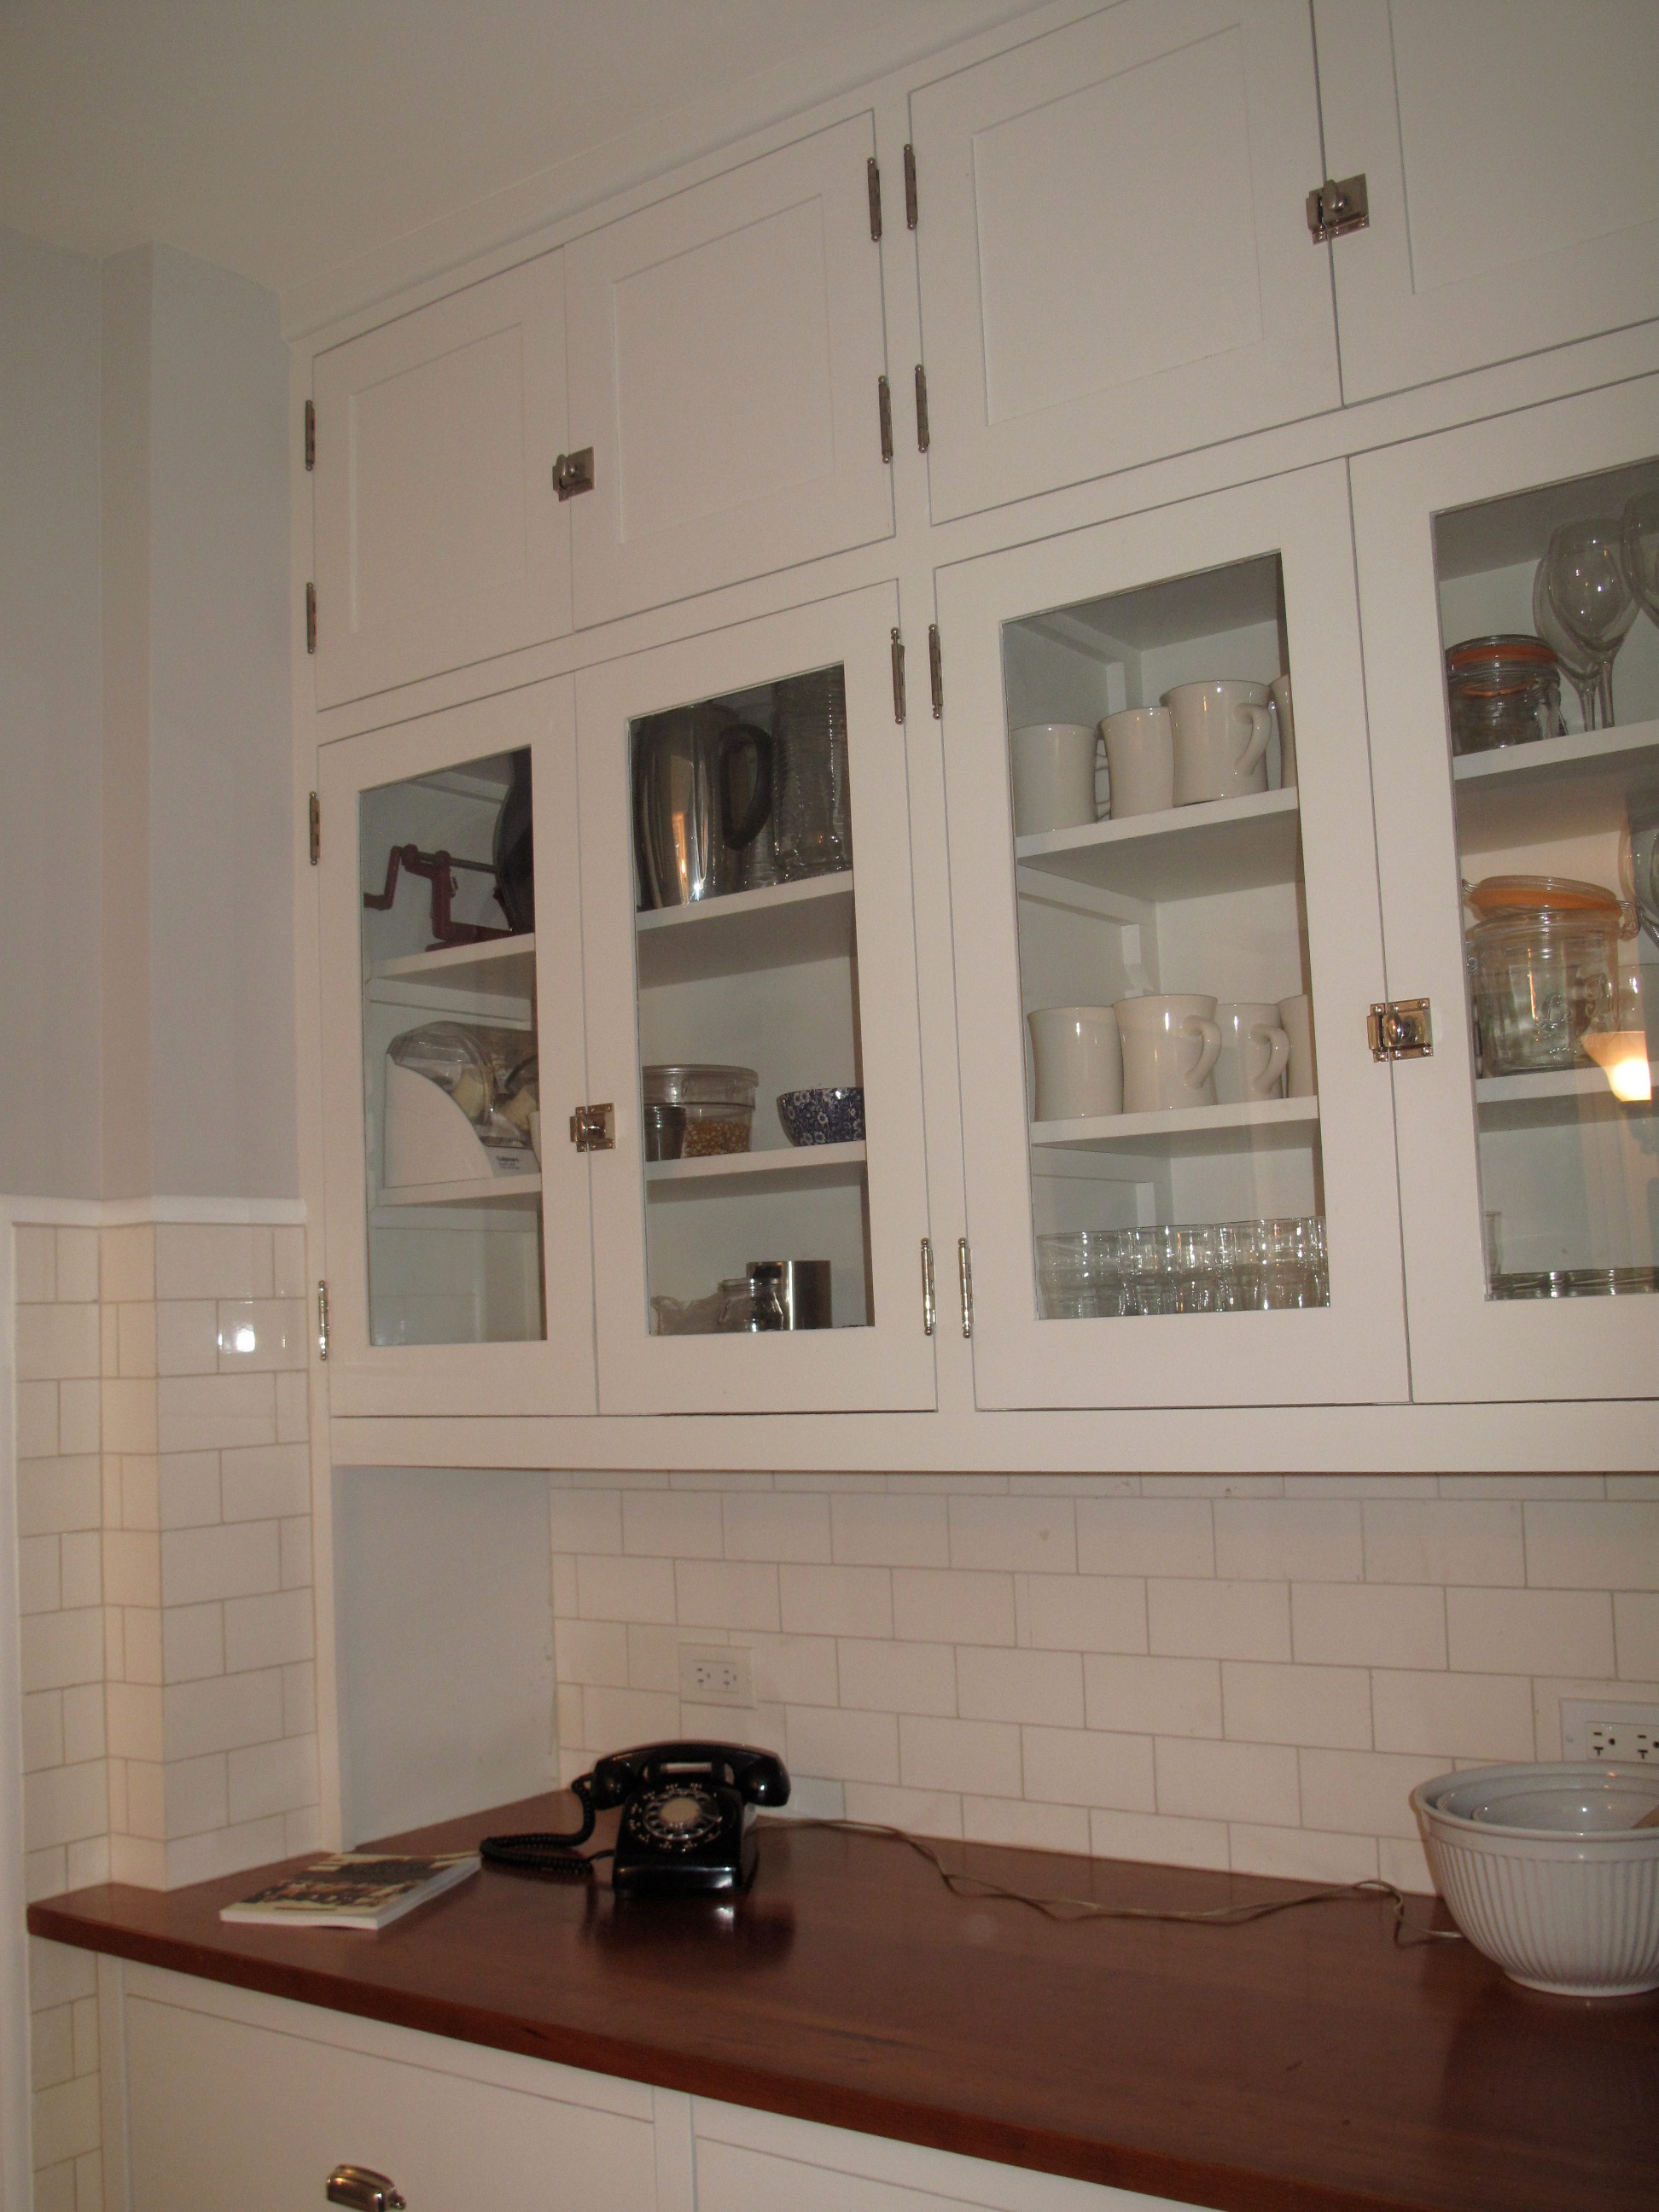 s colonial revival kitchen test colonial kitchen sink Malley kitchen cherry counter area